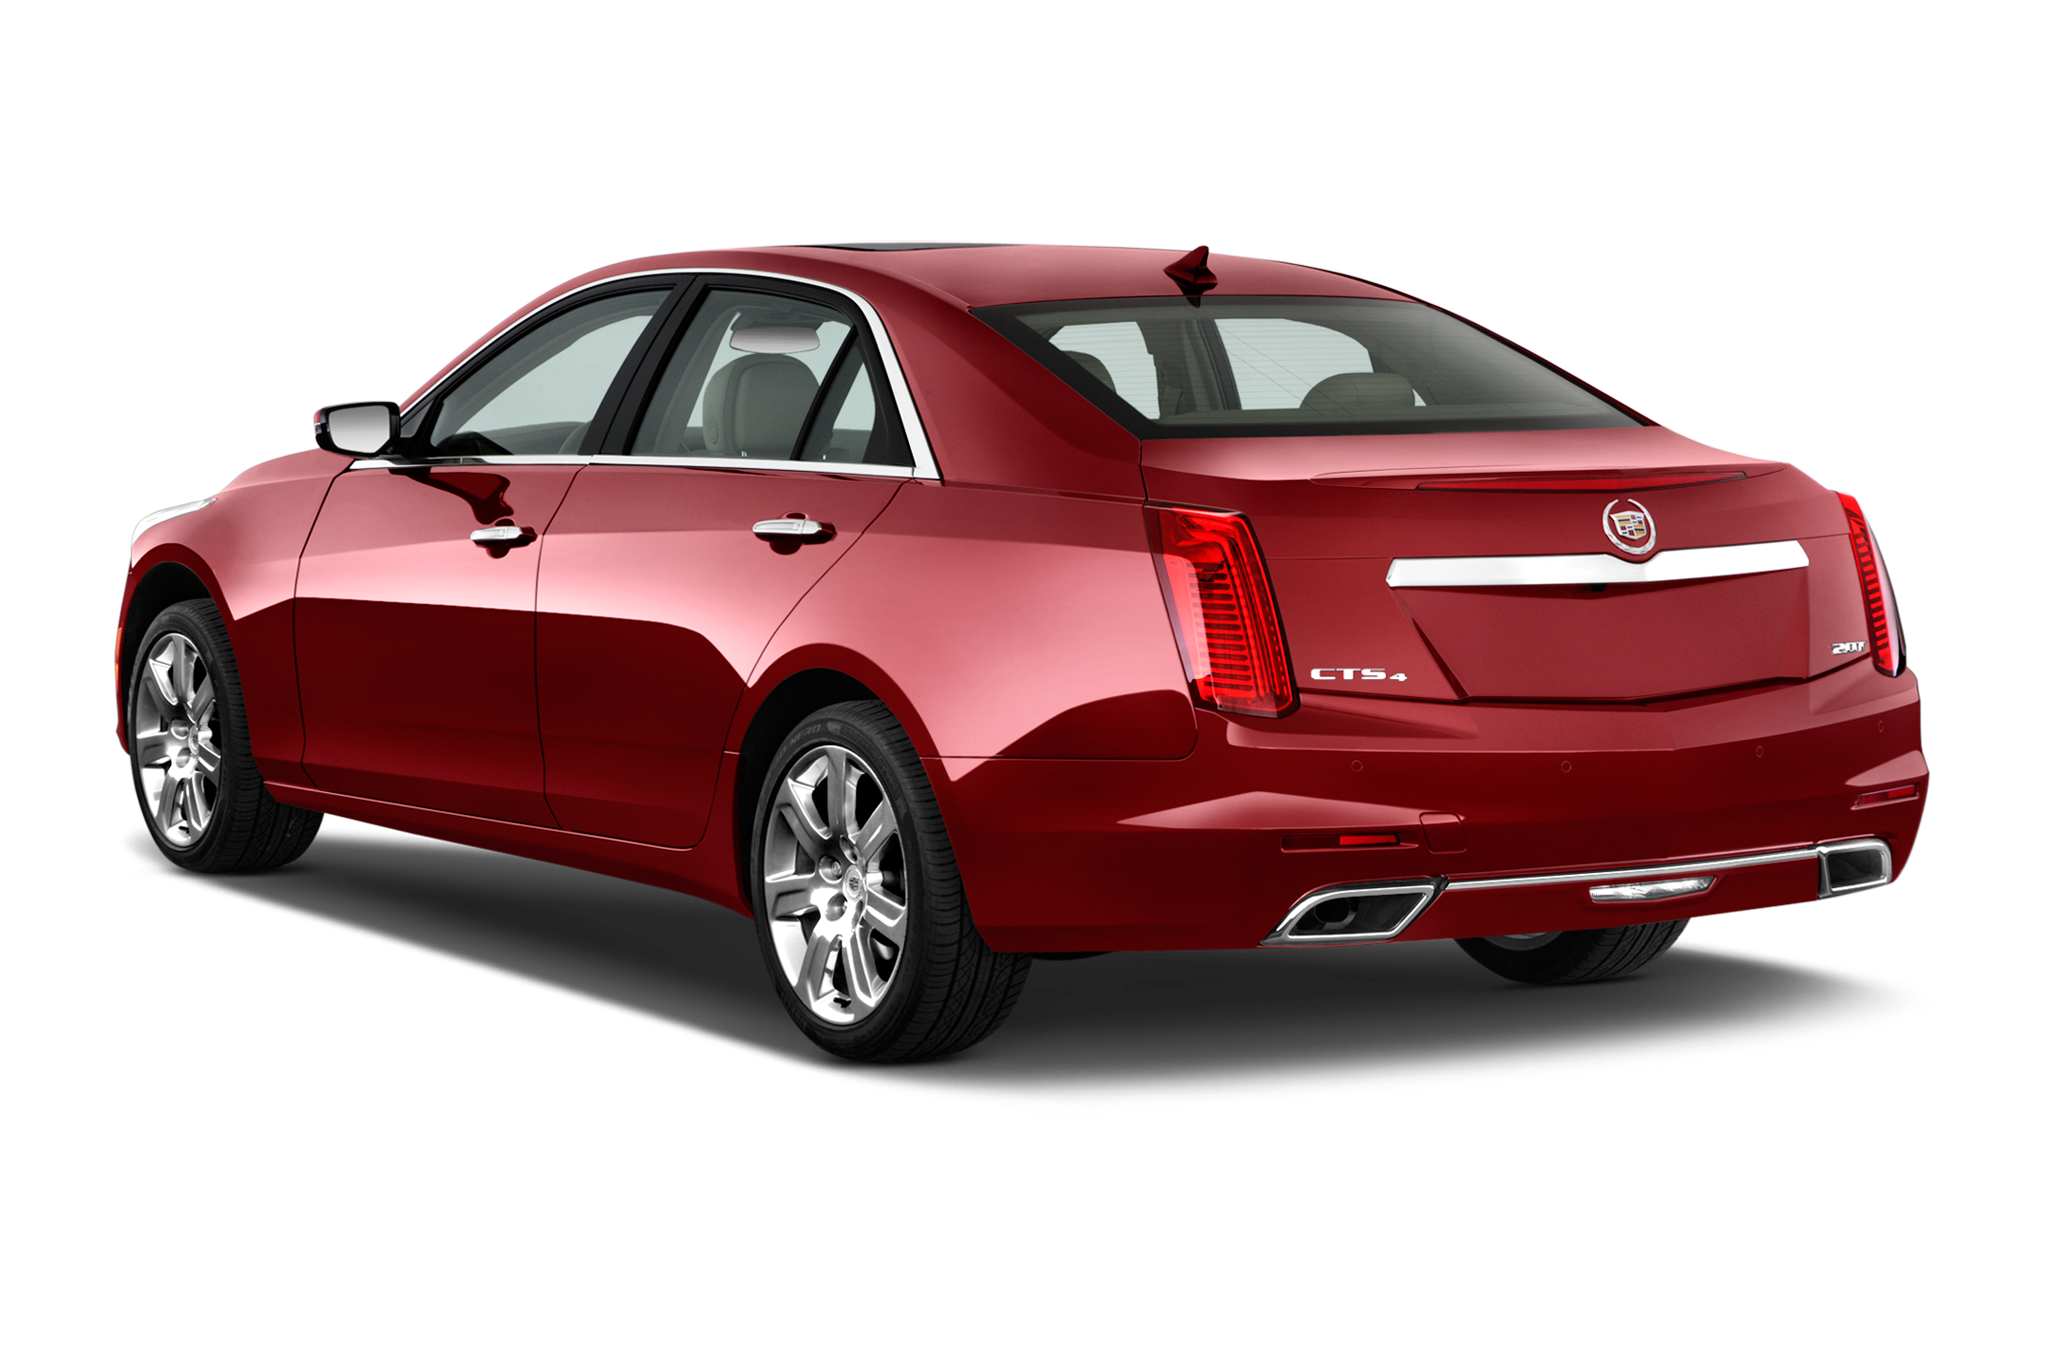 2015 cadillac cts receives price adjustment. Black Bedroom Furniture Sets. Home Design Ideas